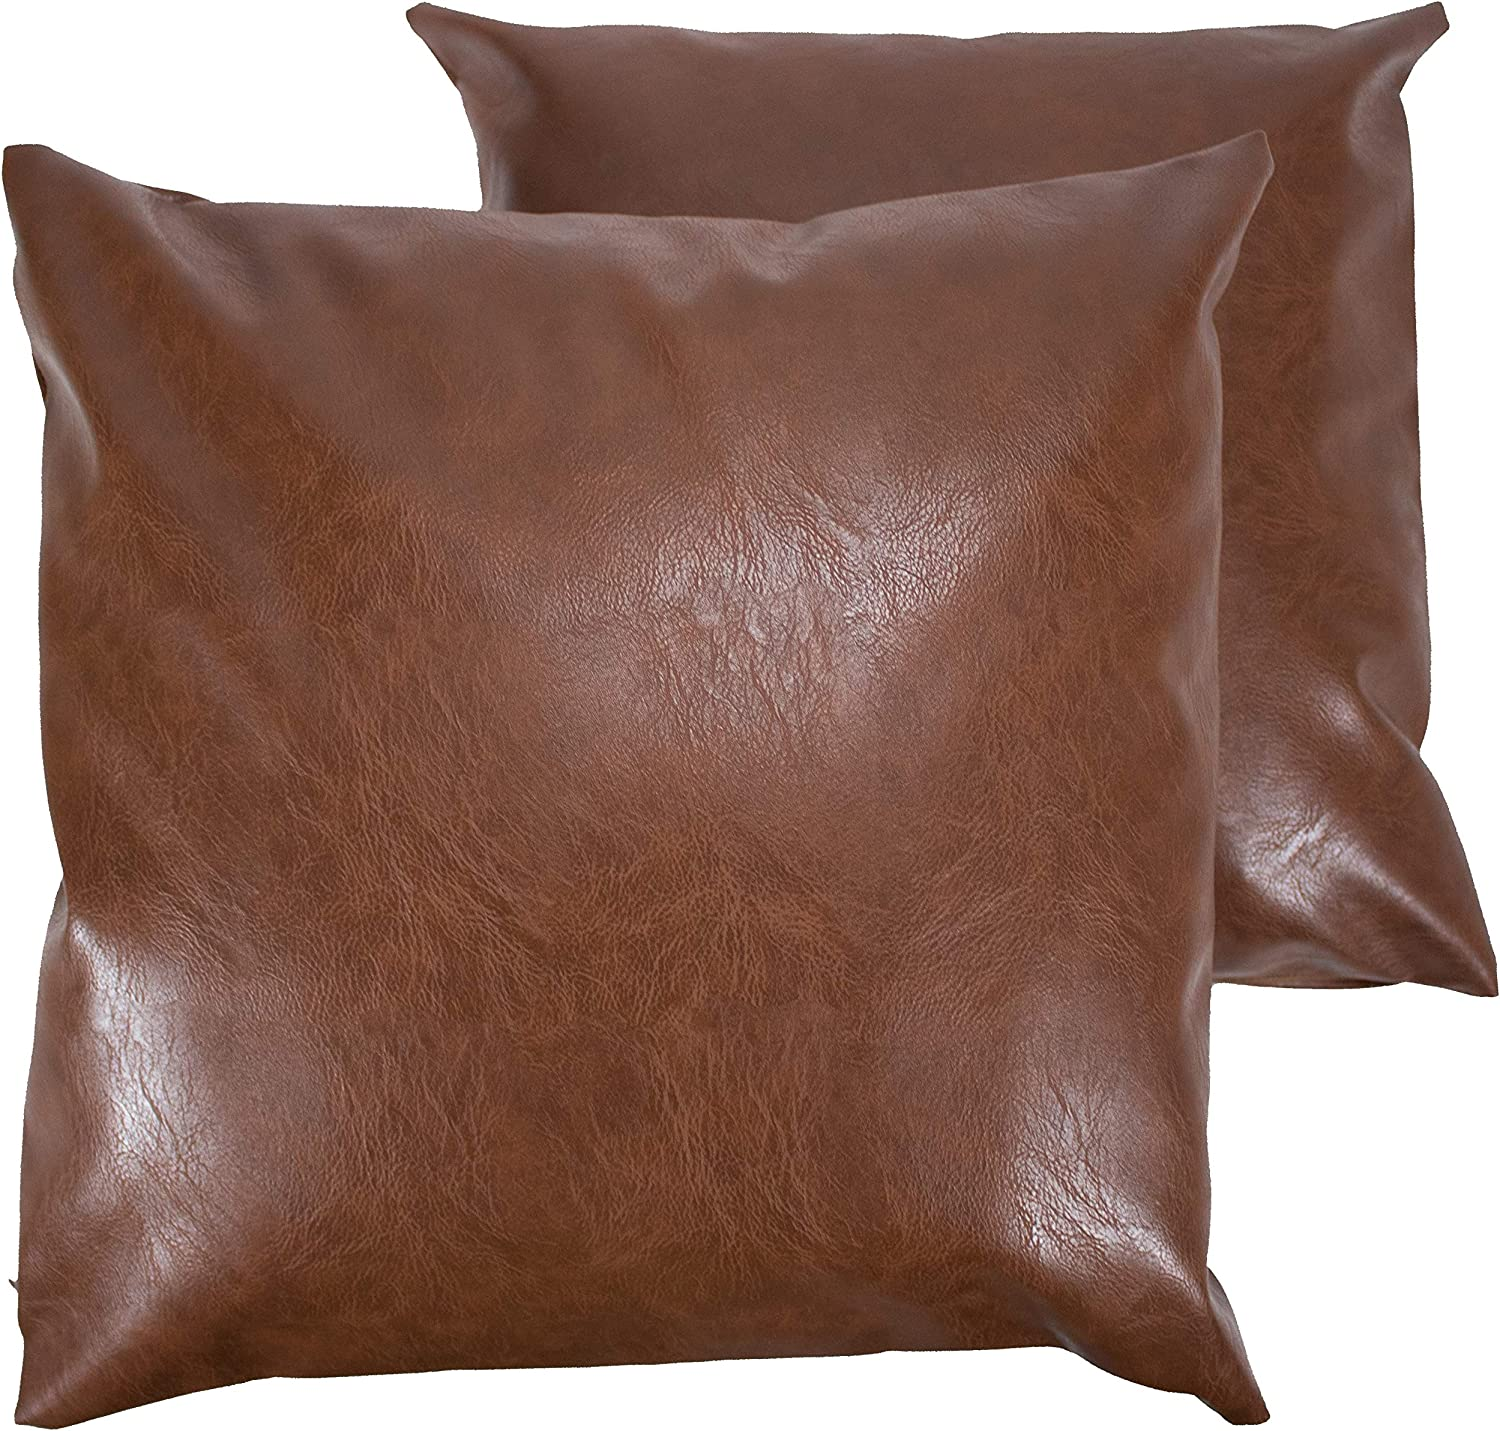 """A1 Depot Faux Leather Pillow Covers Set of 2 for Couch Sofa Chair Bed Modern Home Decor – Luxury Soft Thick & Durable Decorative Throw Pillows Cases - Farmhouse Decoration (Coffee, 18""""x18"""")"""